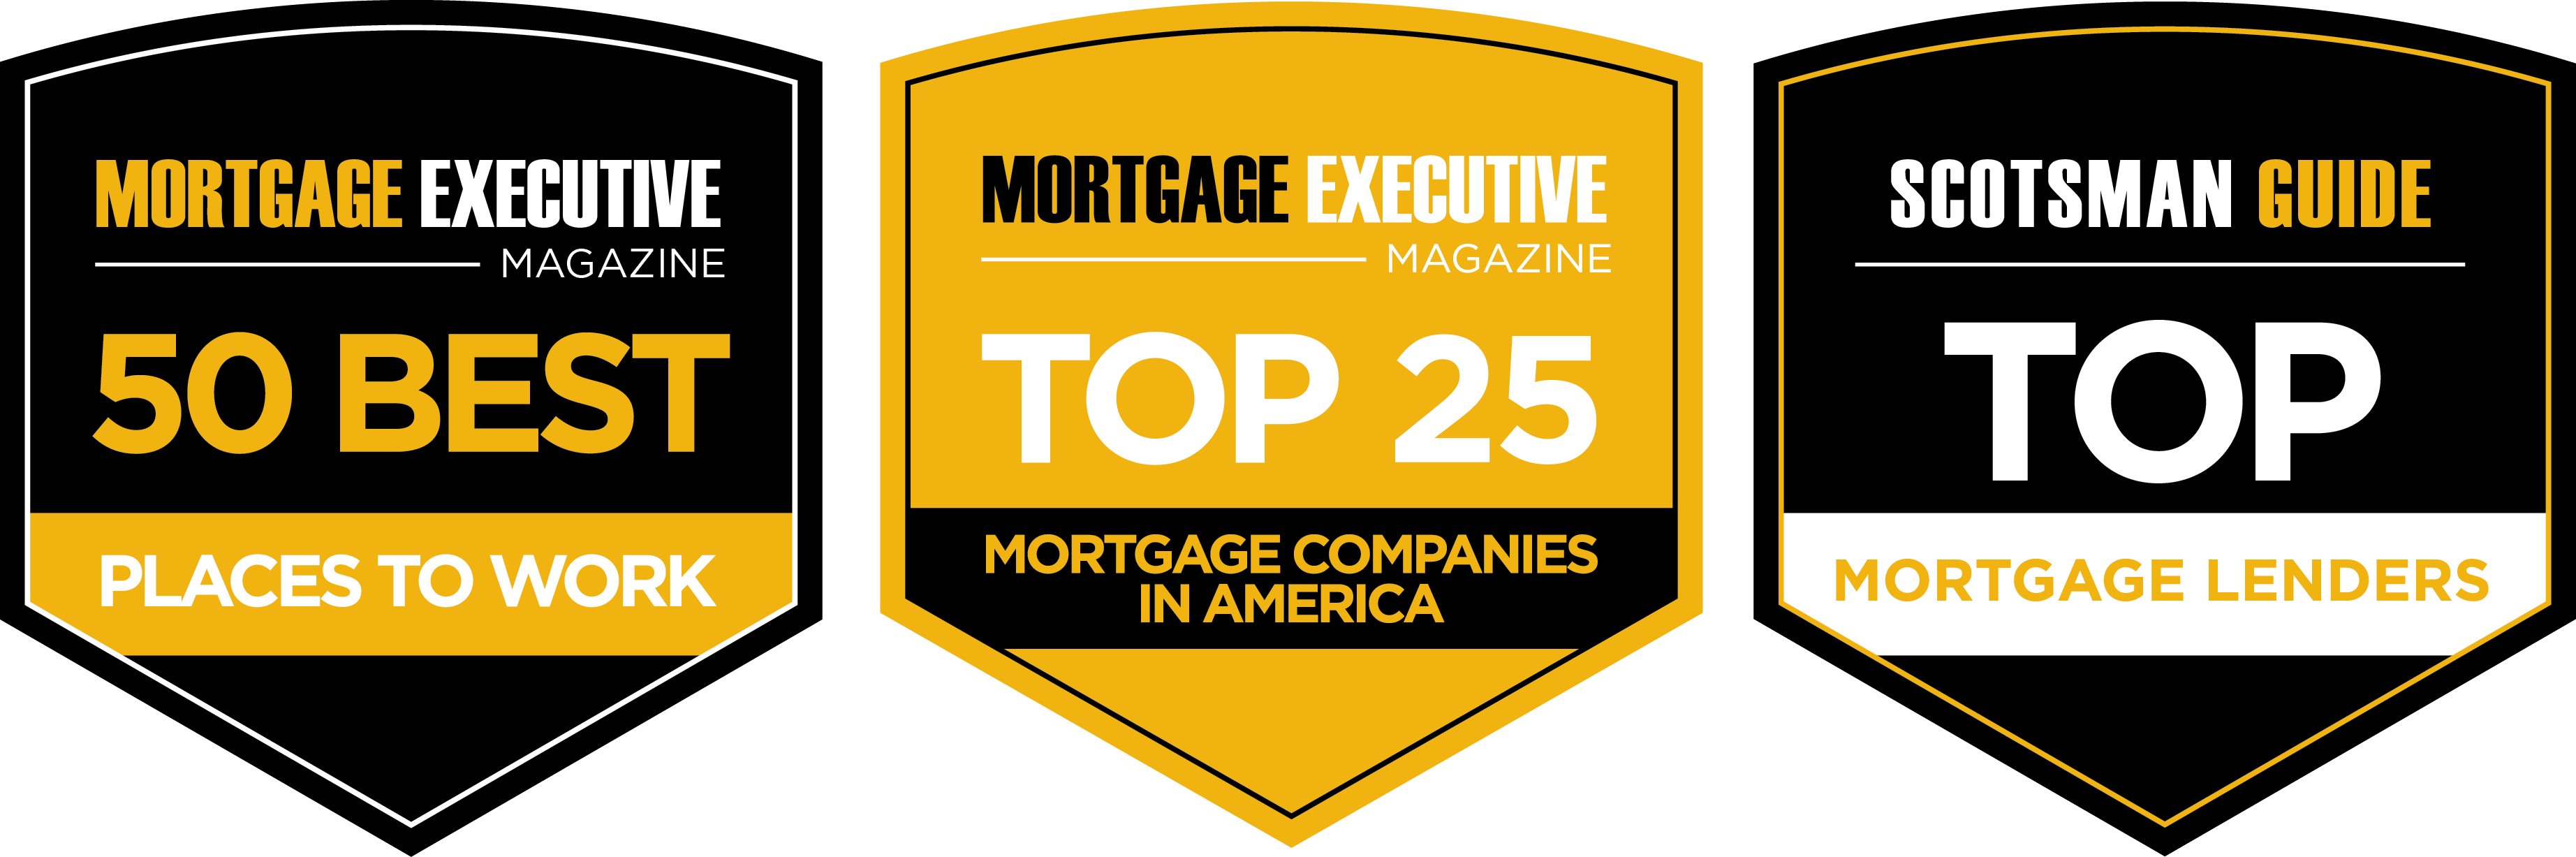 Mortgage Executive Magazine's 50 Best Places to Work and Top 25 Mortgage Companies in America; Scotsman Guide's Top Mortgage Lenders